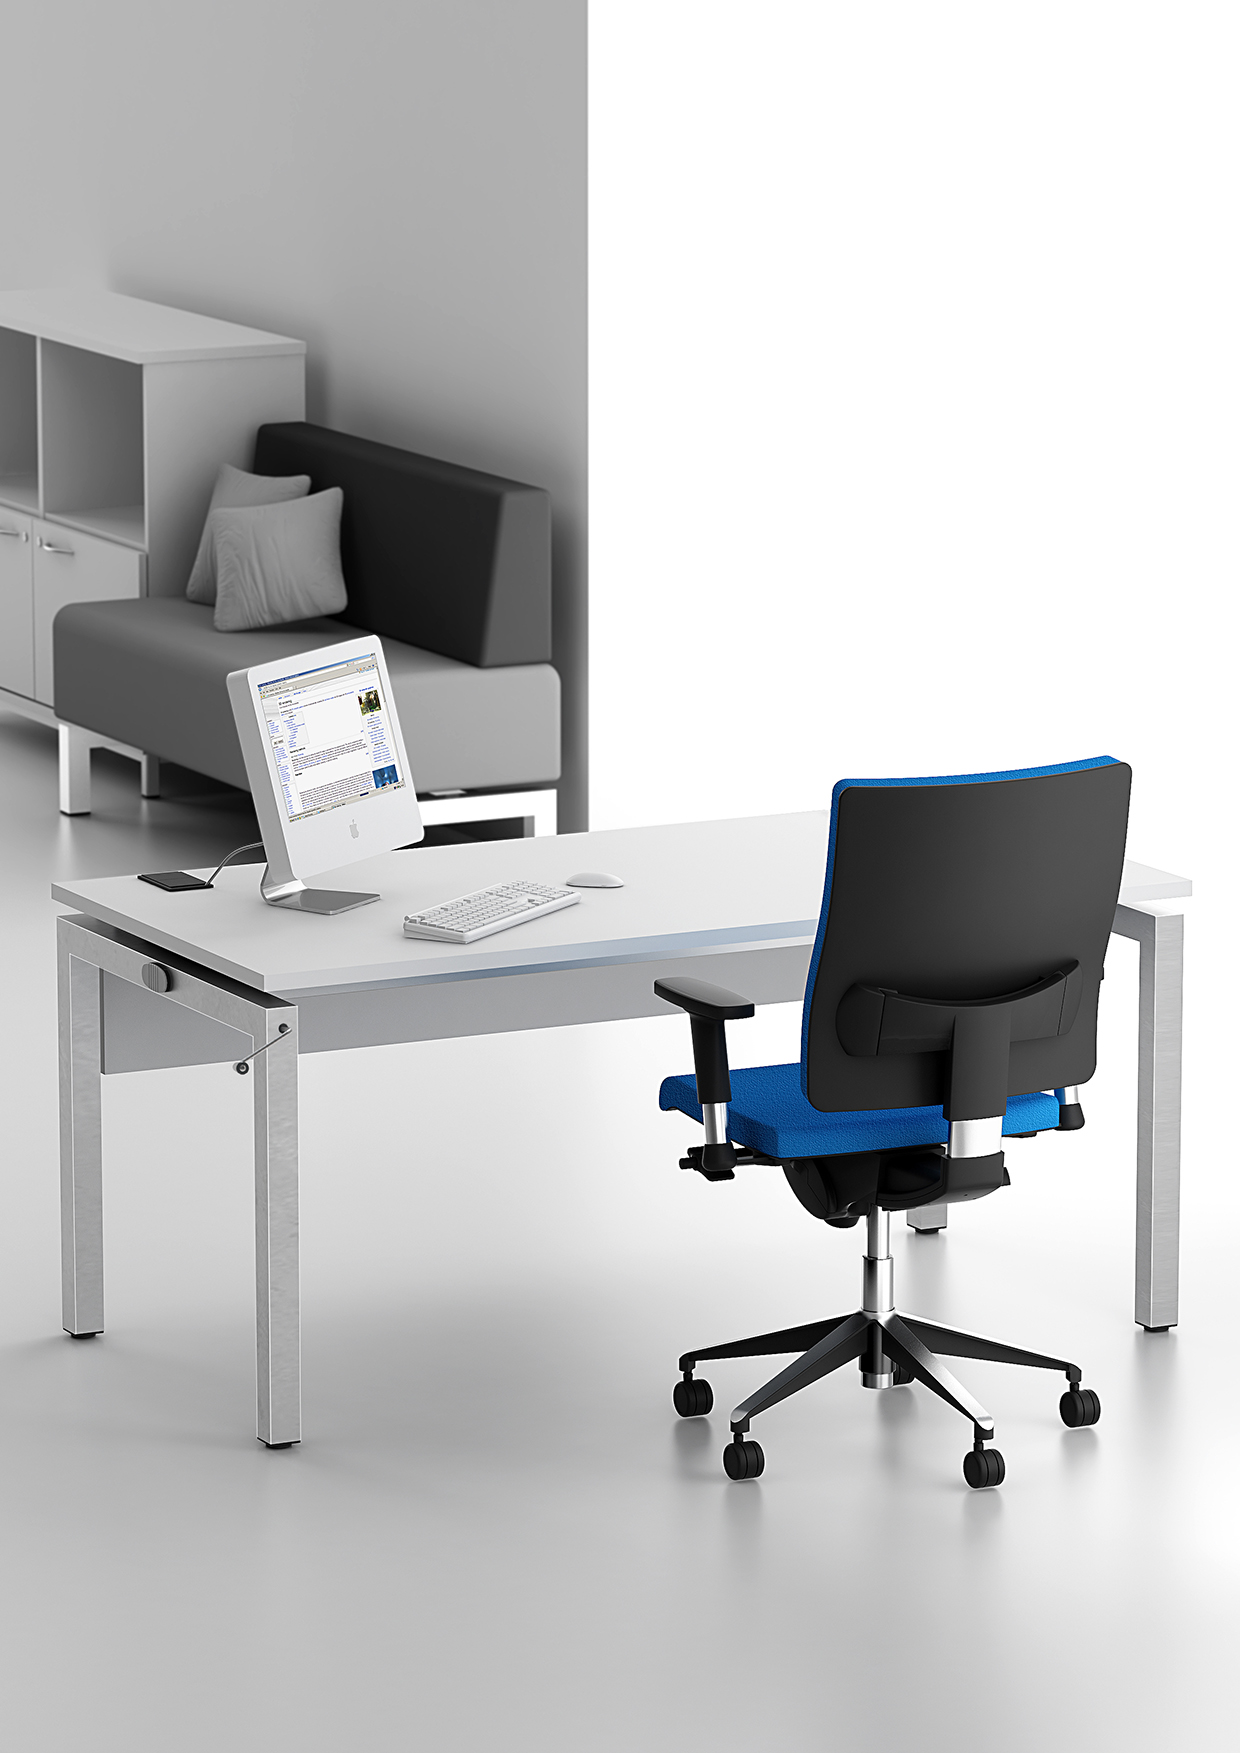 Bench² Manual-Height-Adjustable-Desks-Example-Set-Up-with-Blue-Chair